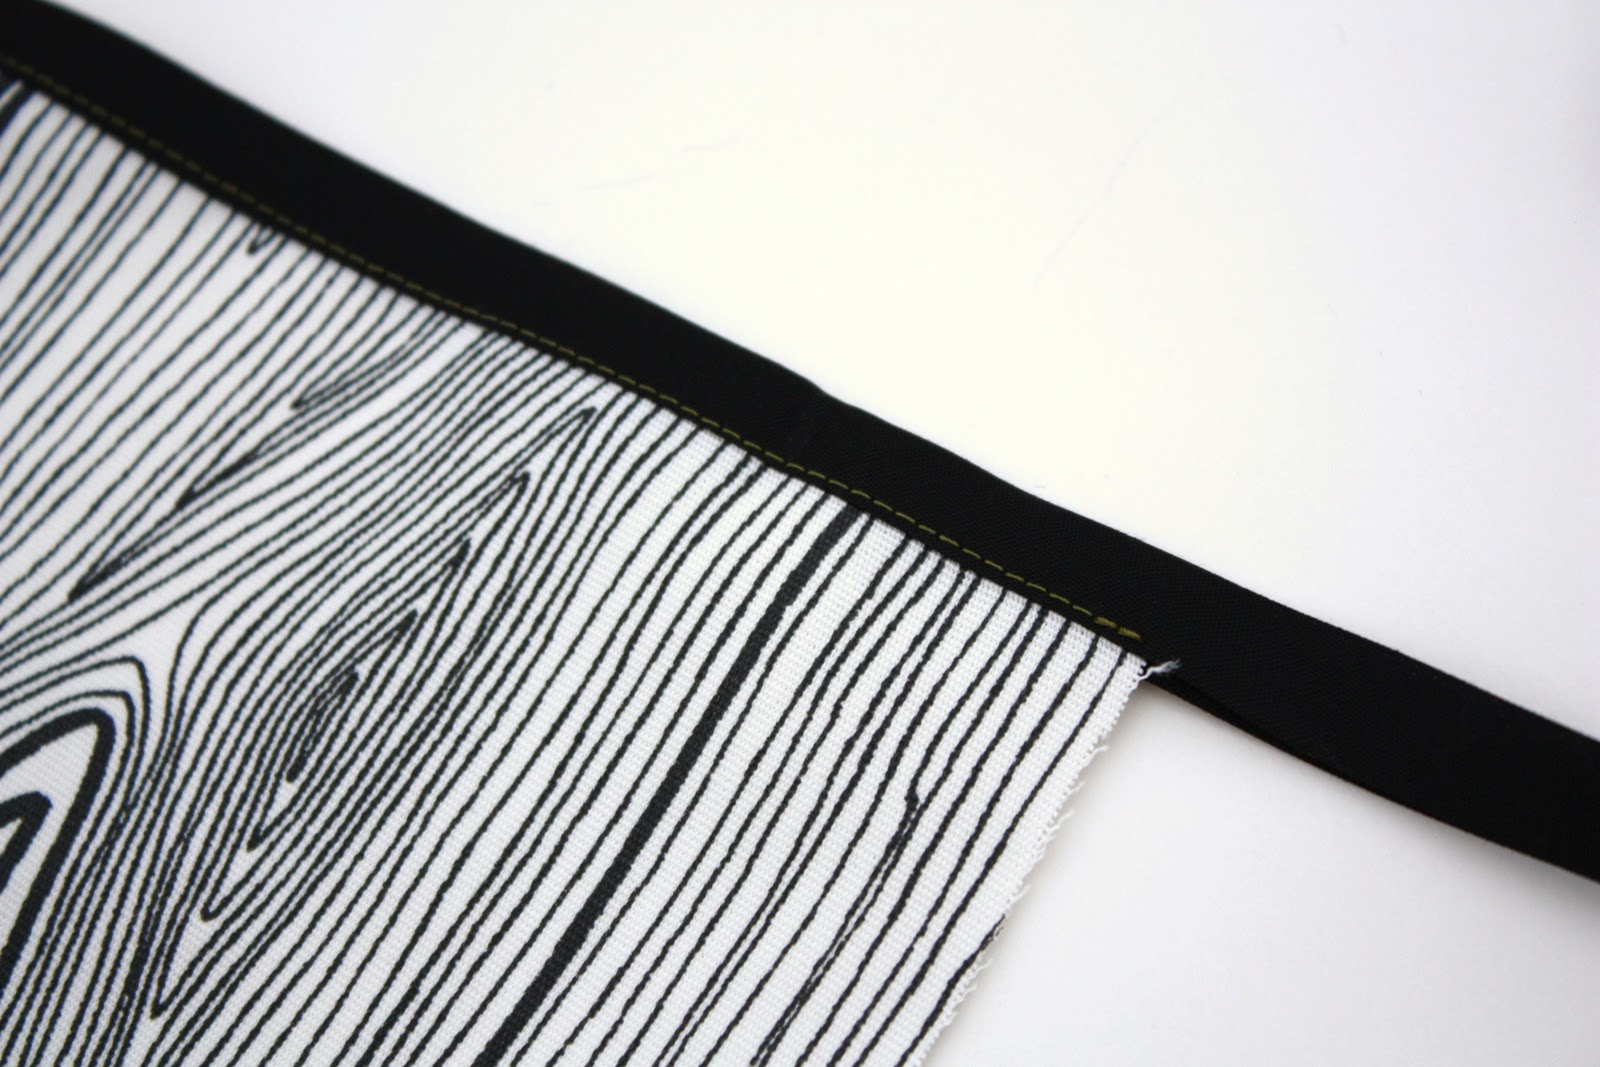 White apron tape - Open The Bias Tape Up And Bring Back Down Toward Next Side Of Apron